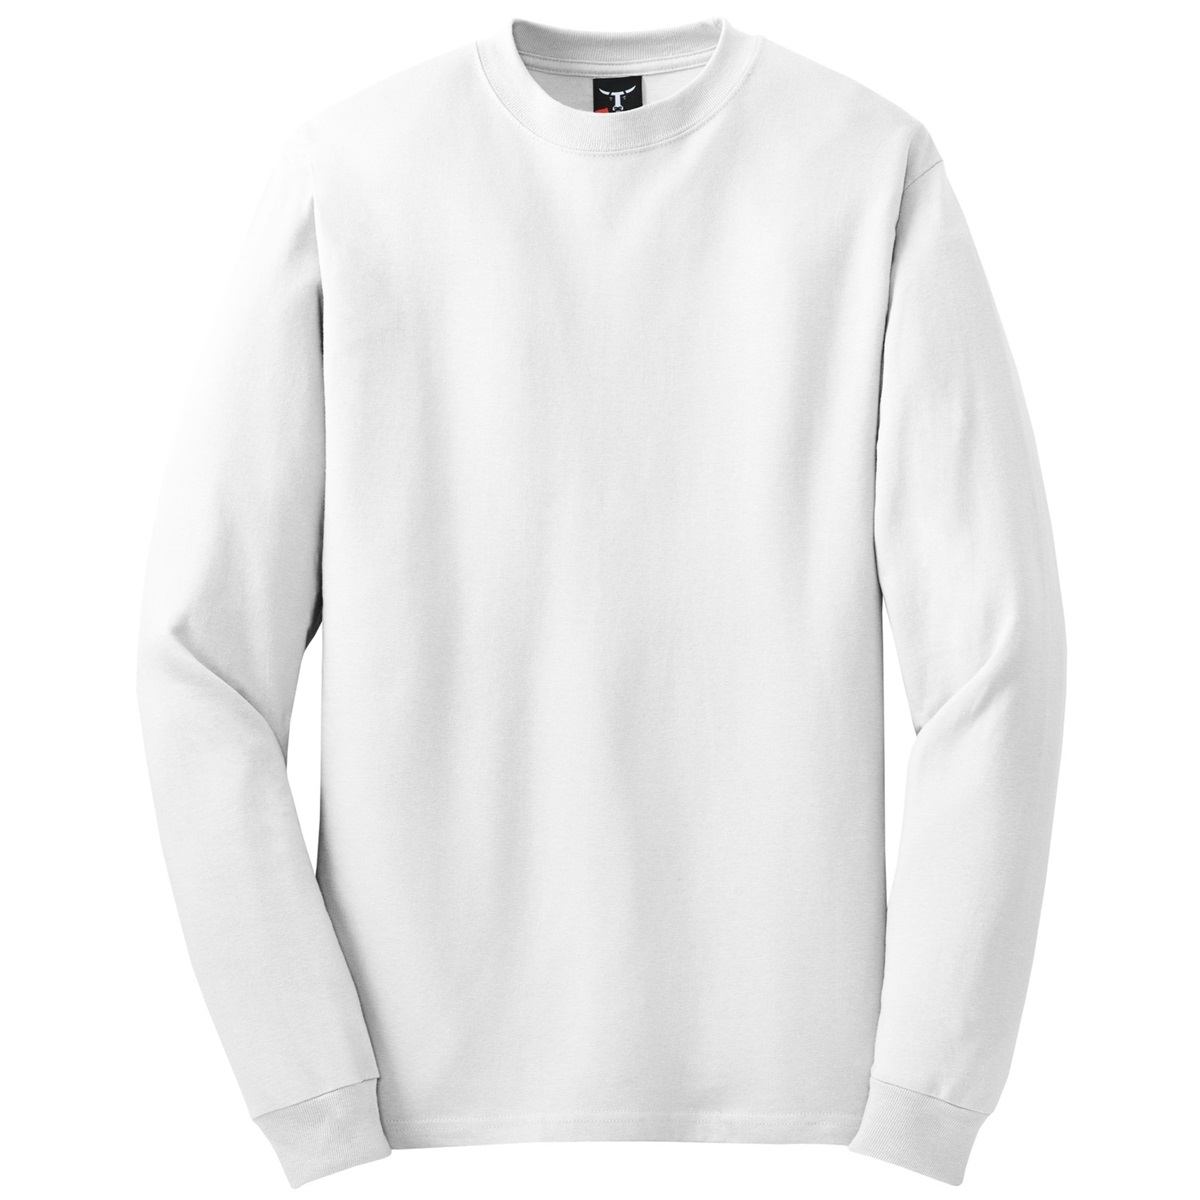 Hanes 5186 beefy t cotton long sleeve t shirt white for White cotton long sleeve t shirt